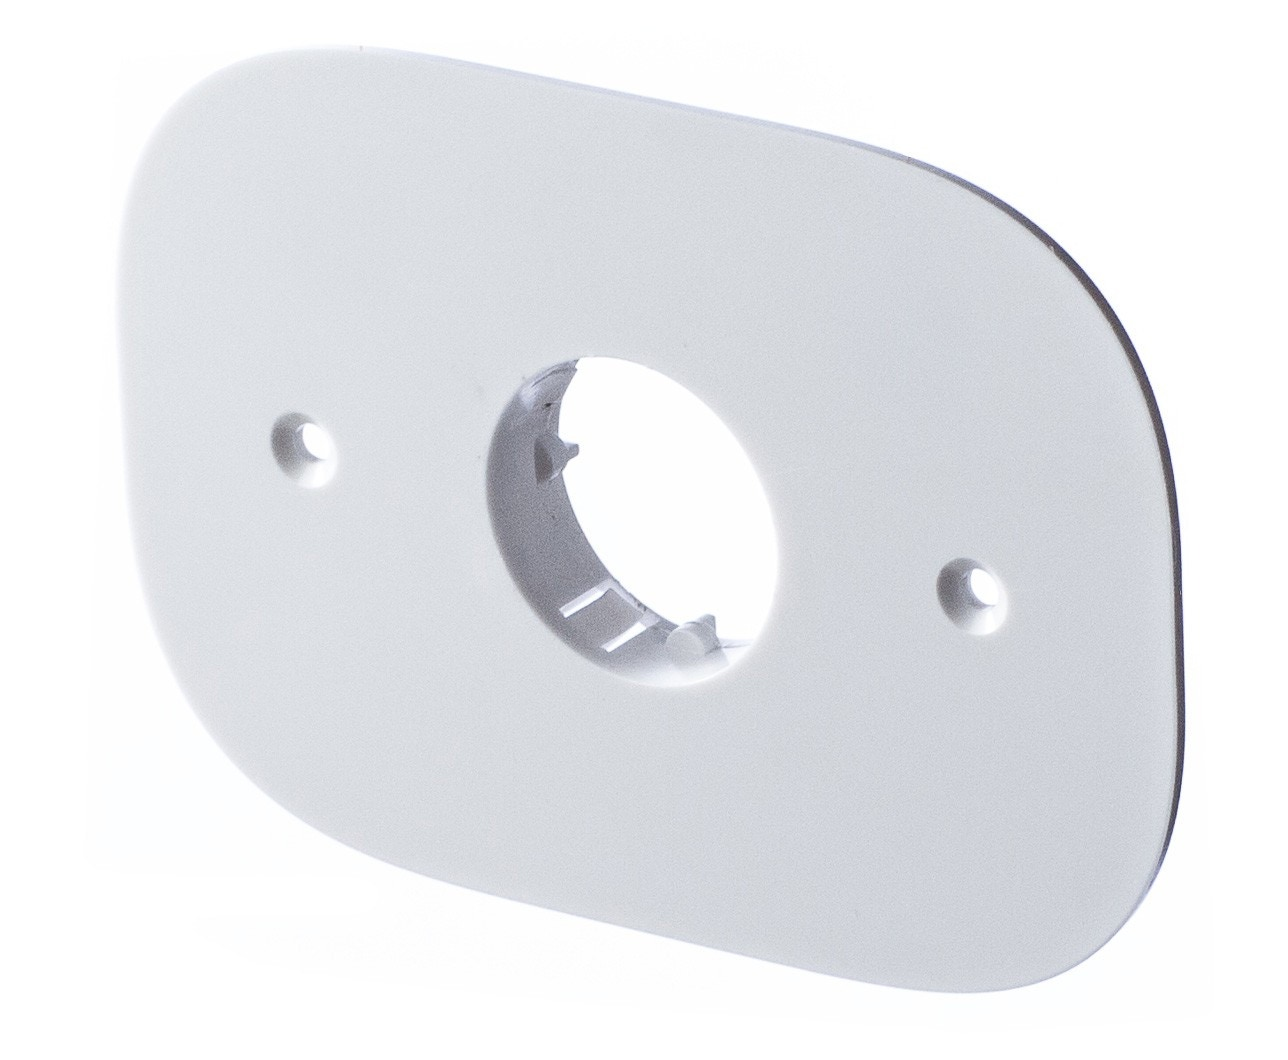 Bocci 22.2.5 Alternate Mounting Plate